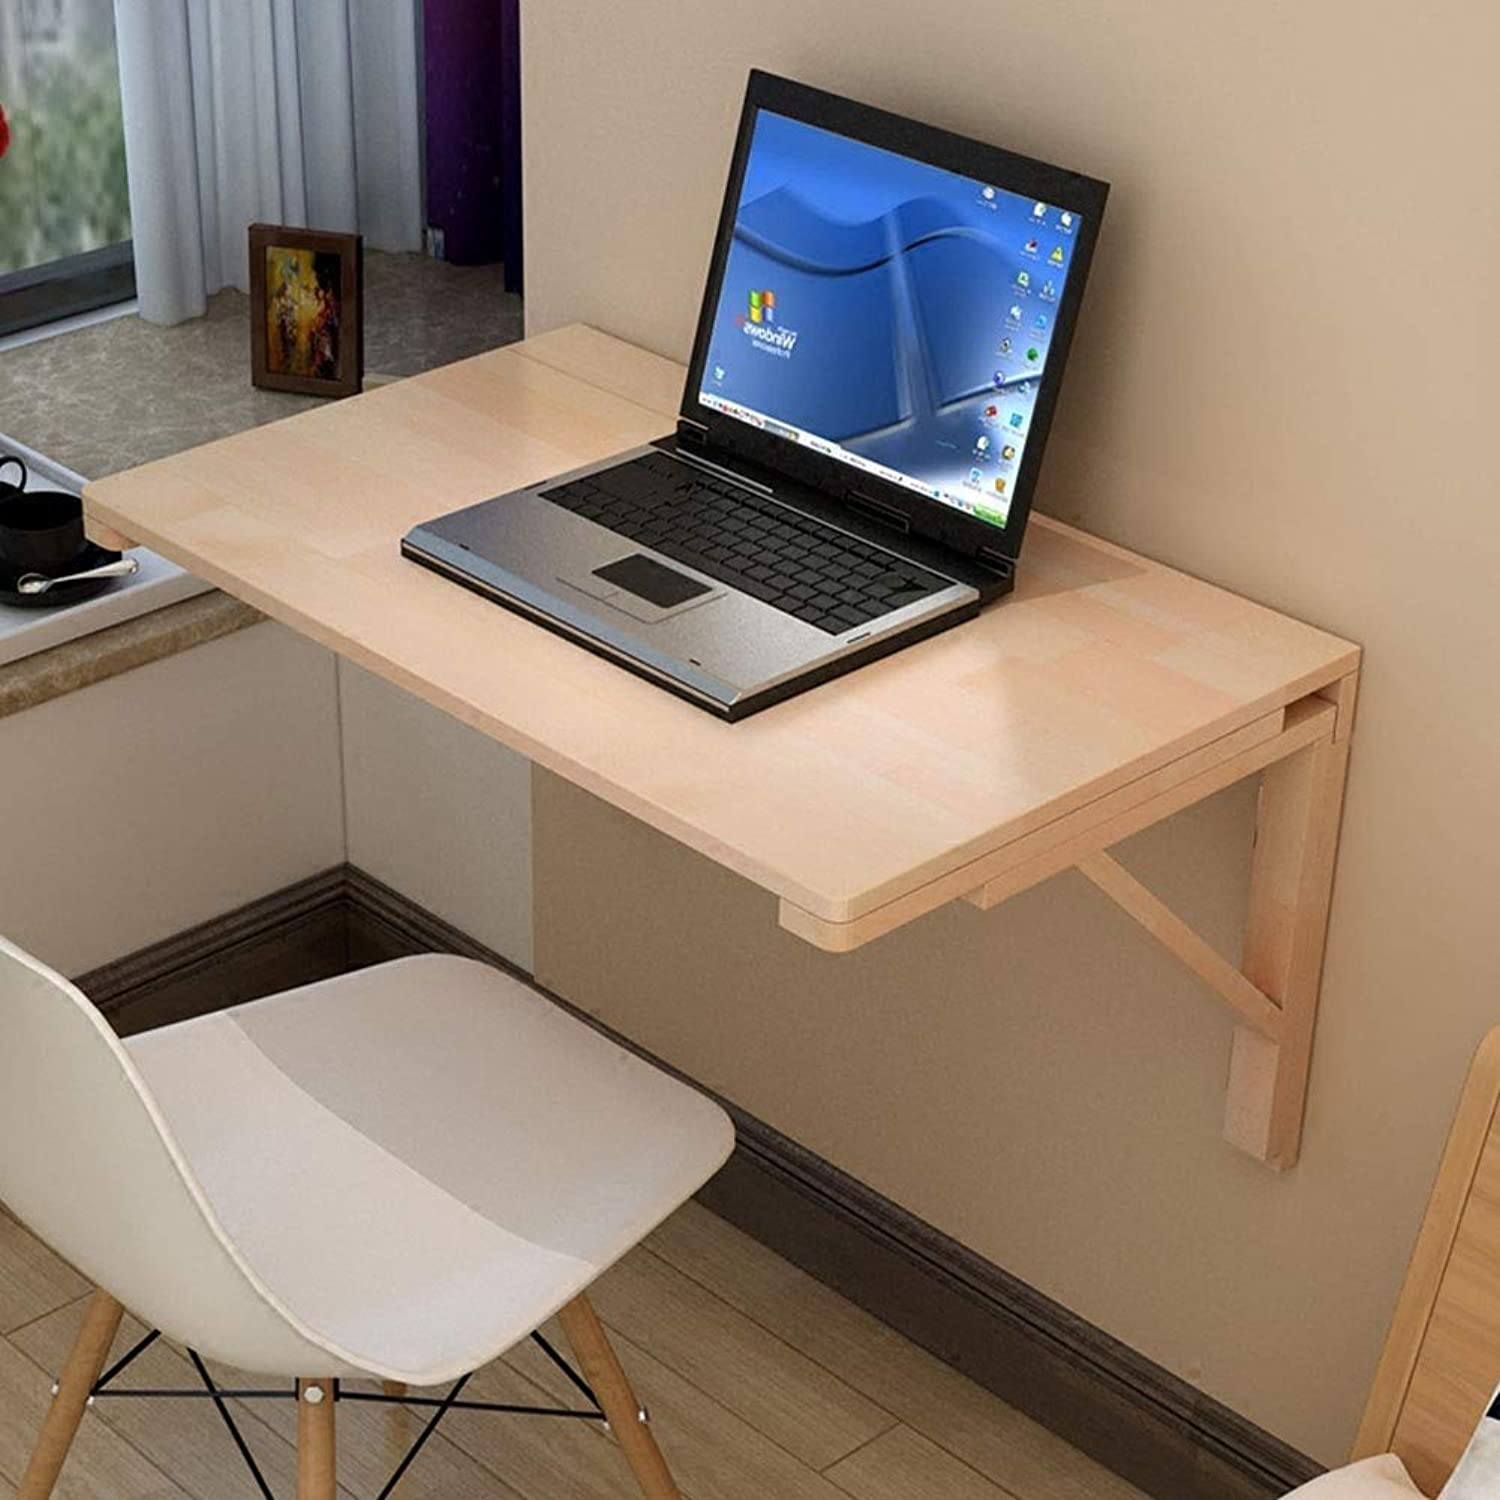 Folding Drop Leaf Table Dining Table Space Saver Fold Congreenible Desk Home Laptop Wall-Mounted Writing Desk Natural color (Size   50  30cm)